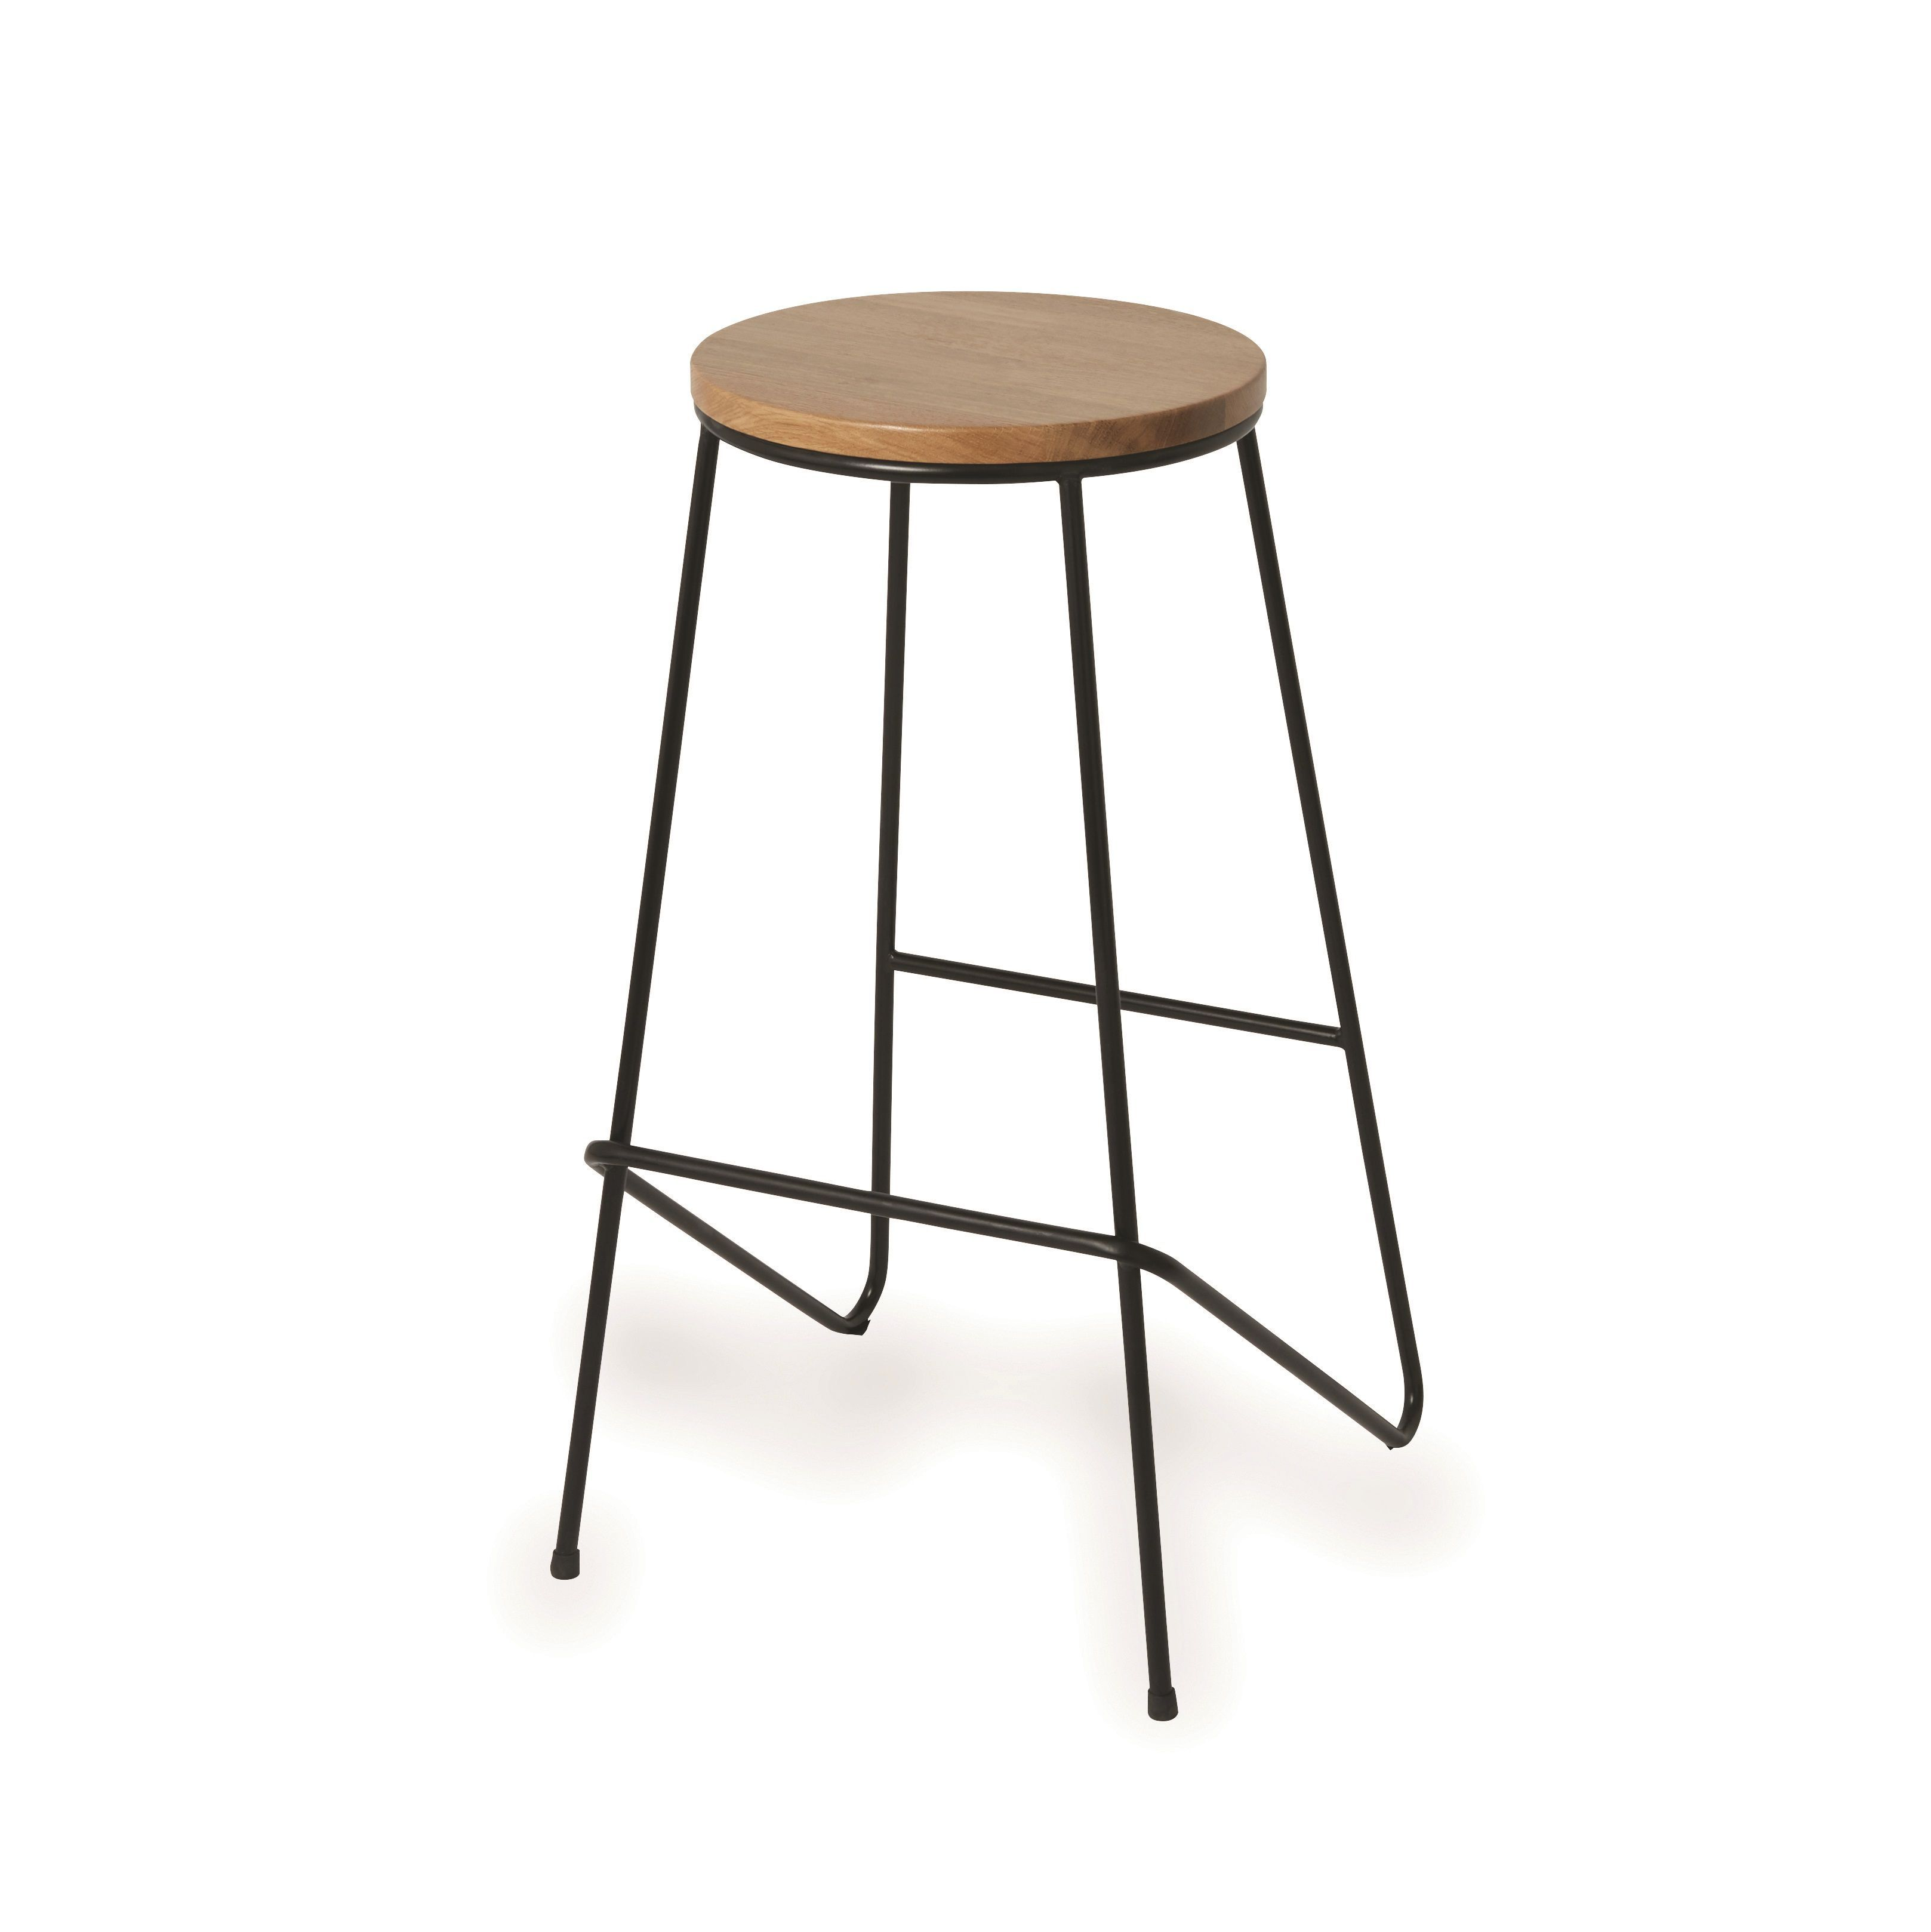 Maloux Black Bar Stool H 710mm W 400mm Departments Diy At